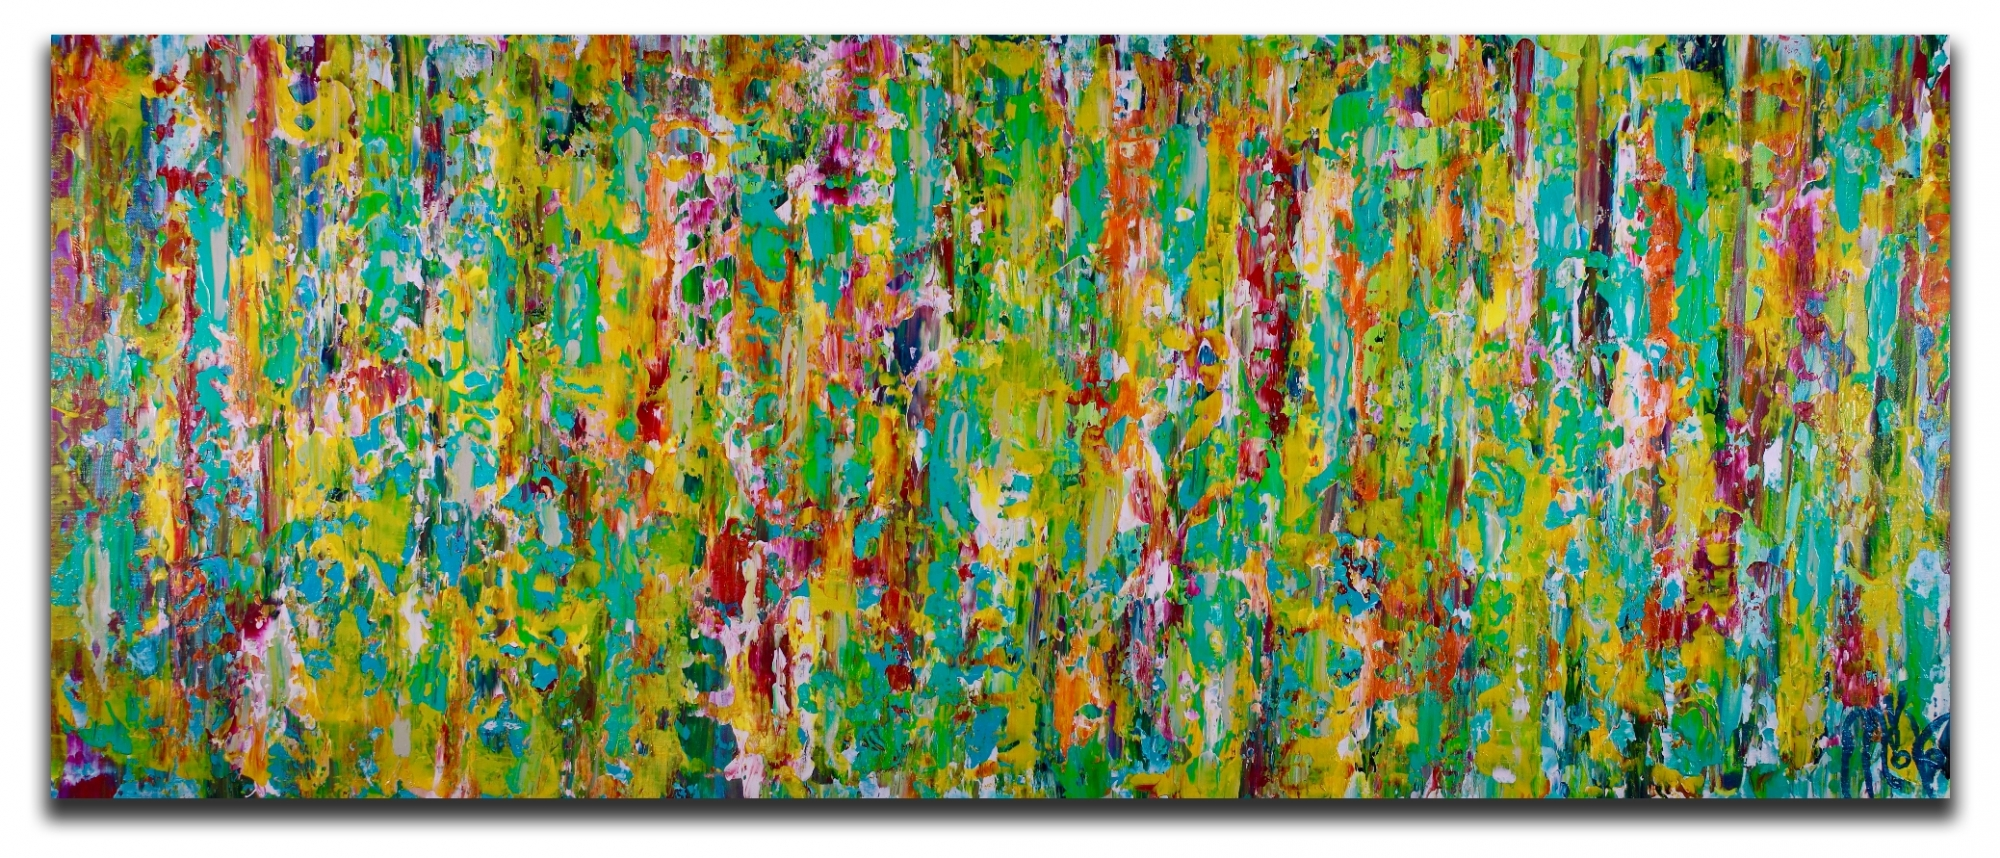 Secret frenzy (2018) Expressionistic Acrylic painting by Nestor Toro